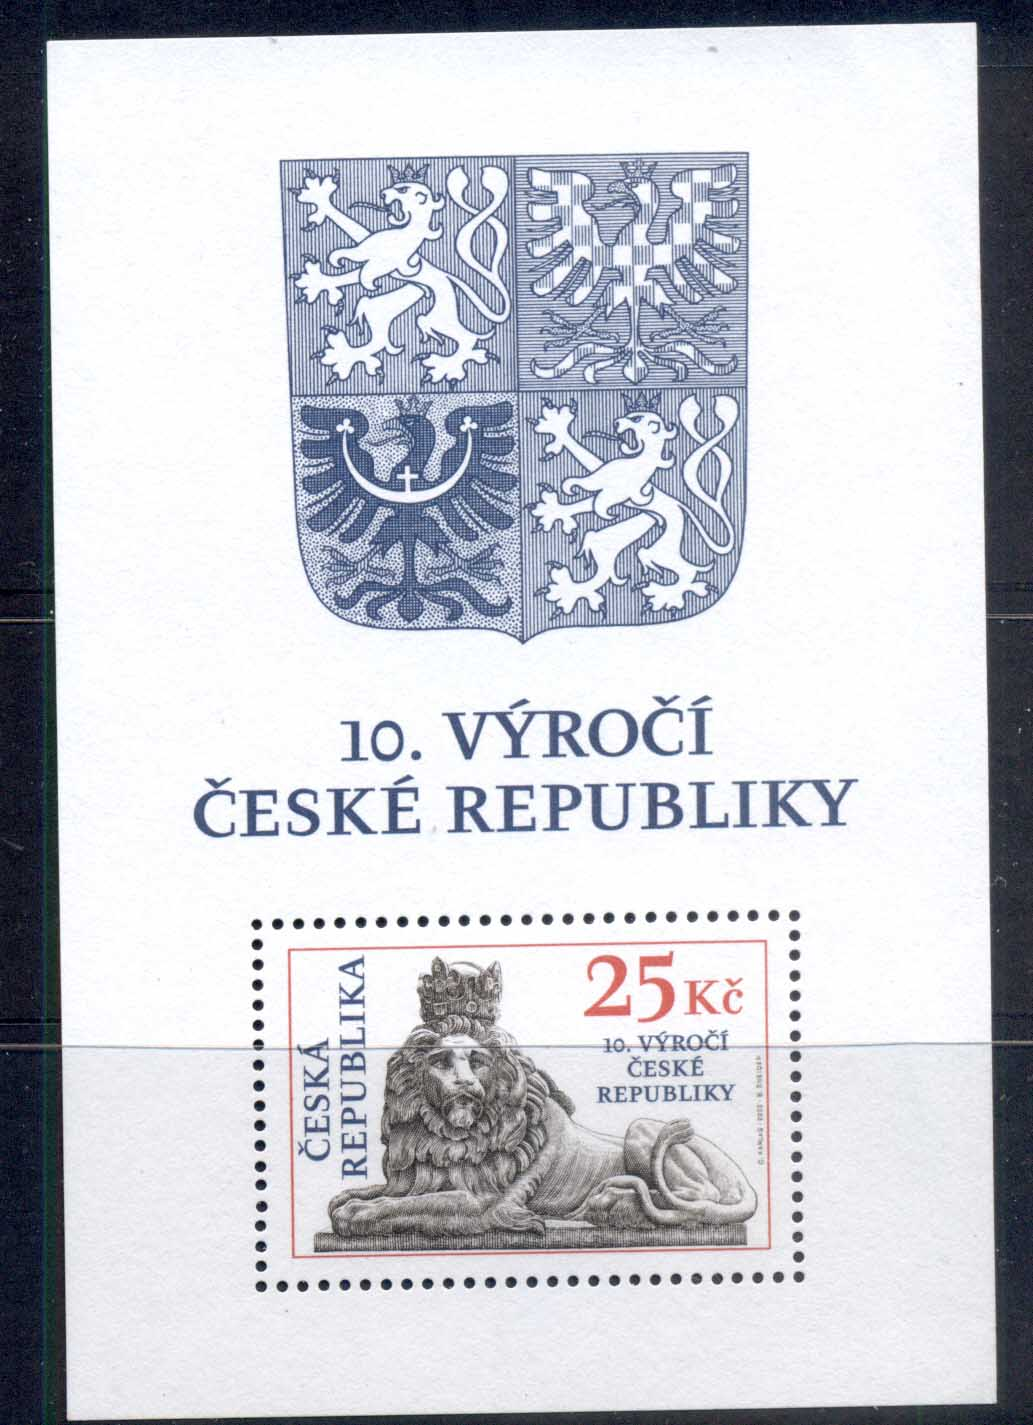 Czech Republic 2003 Czech Rep. 10th Anniv. MS MUH